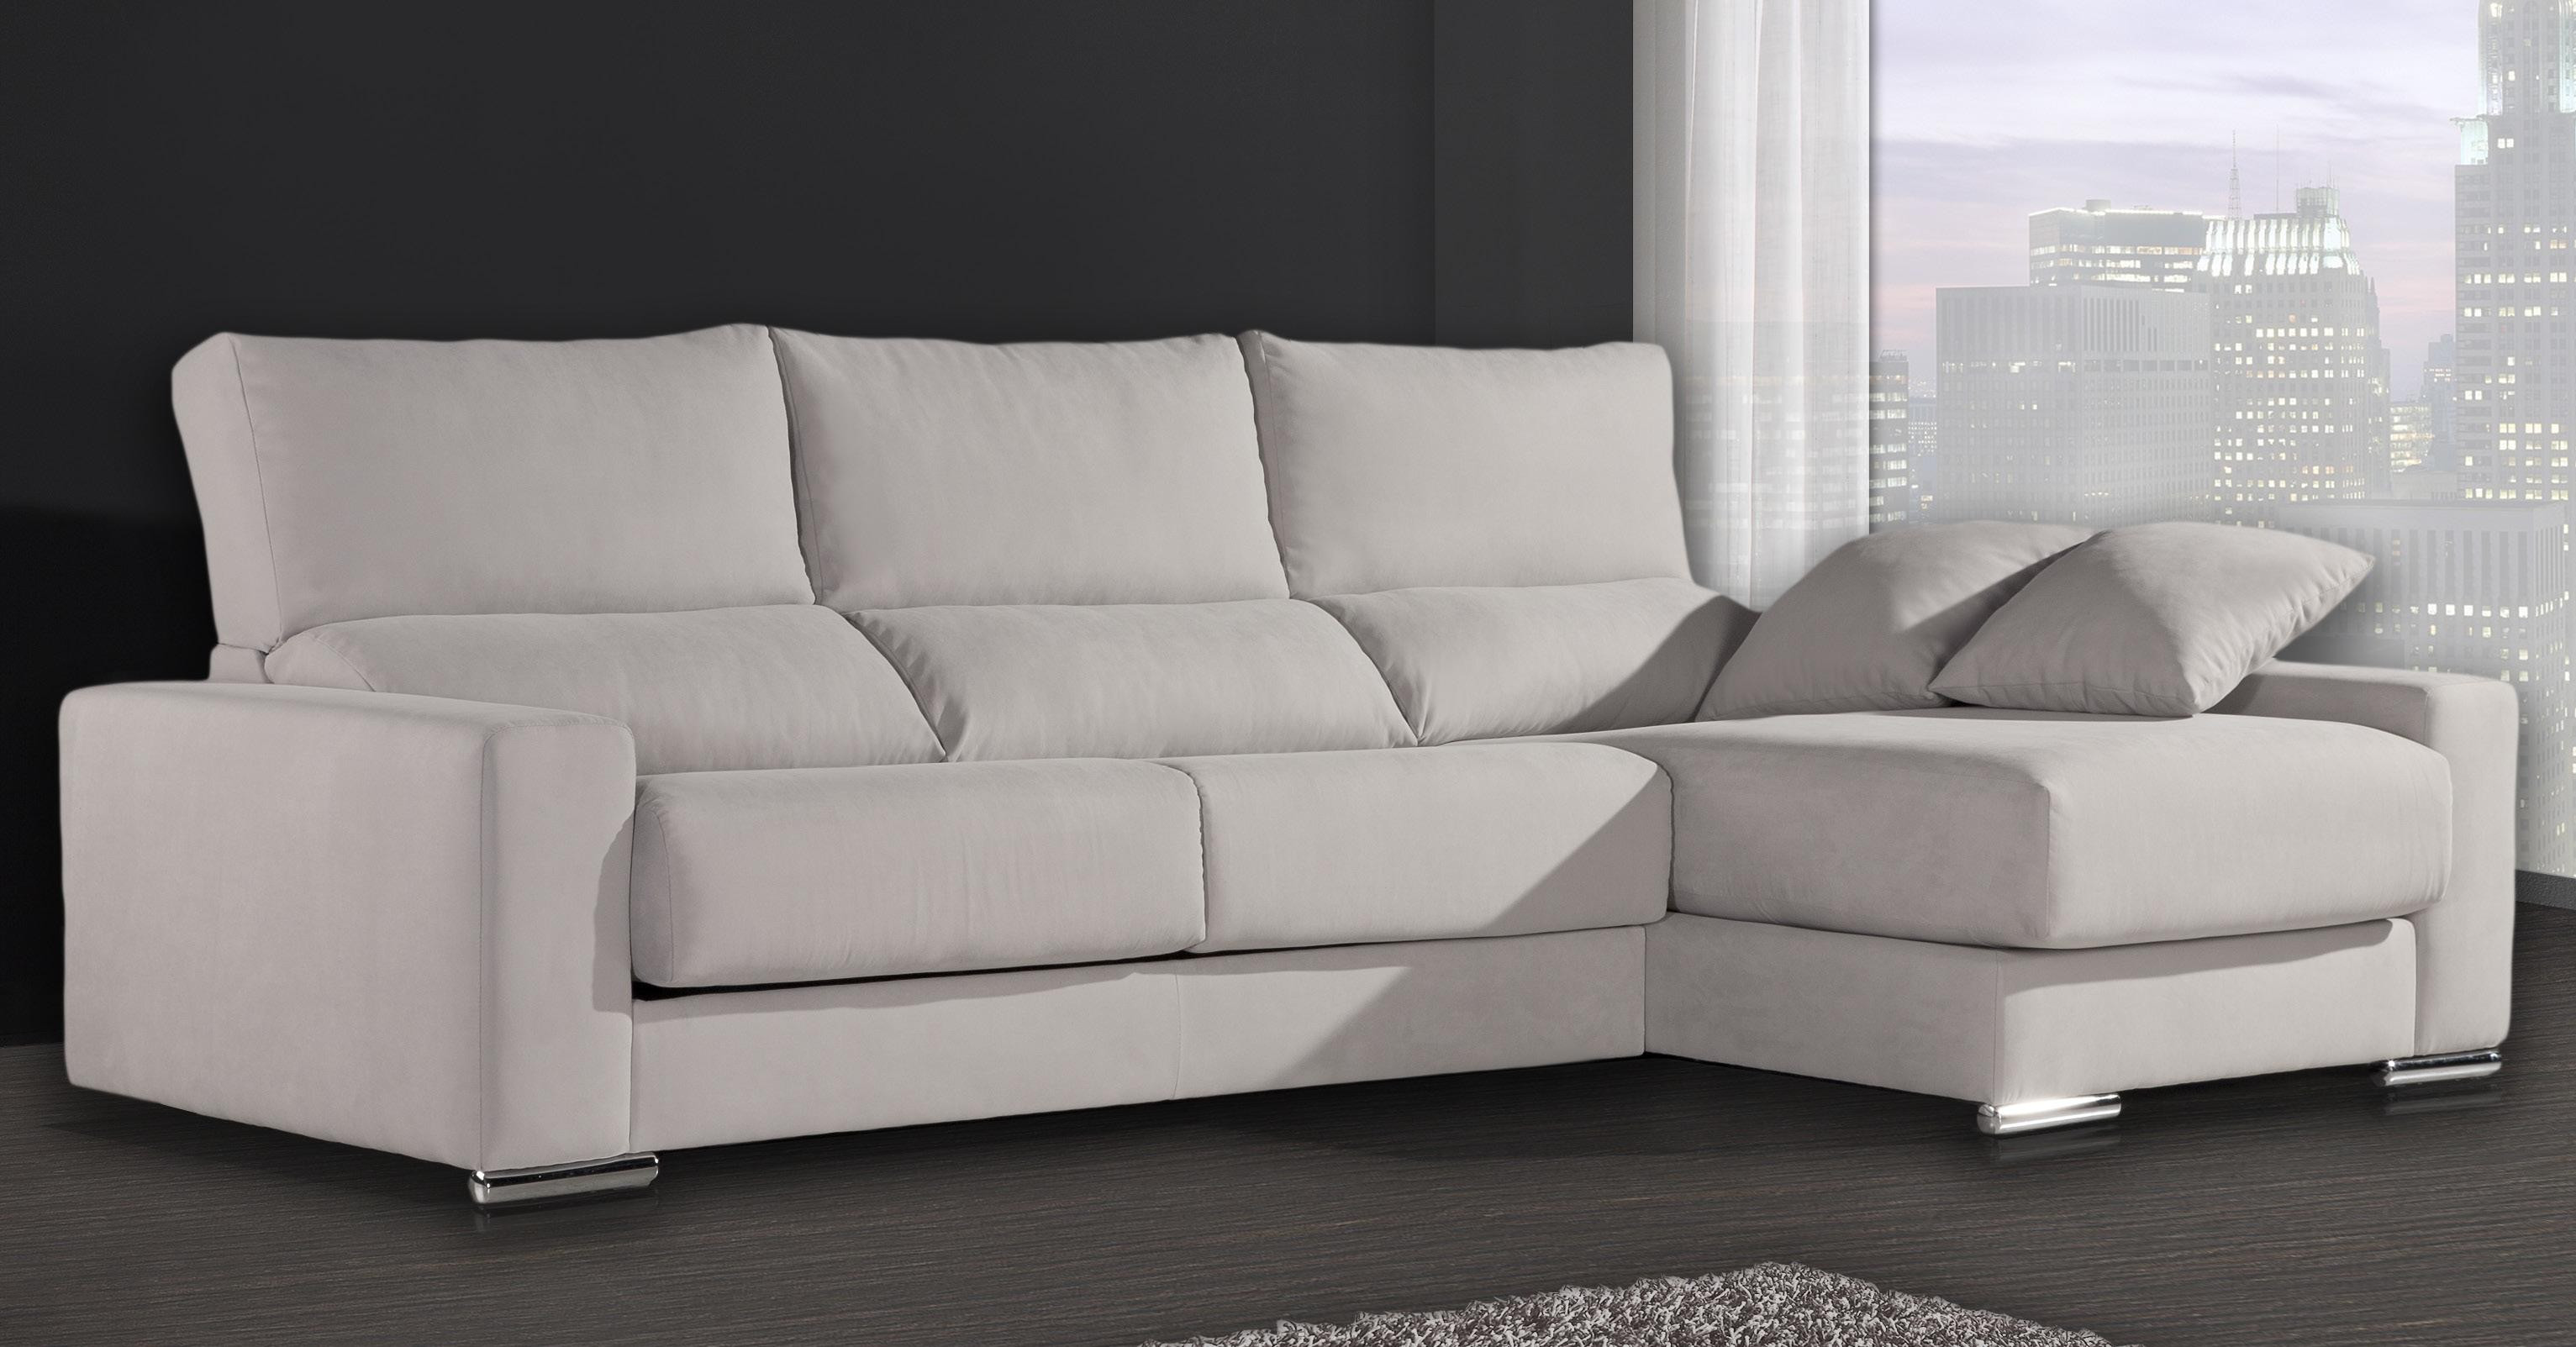 334 sofas y chaise longue